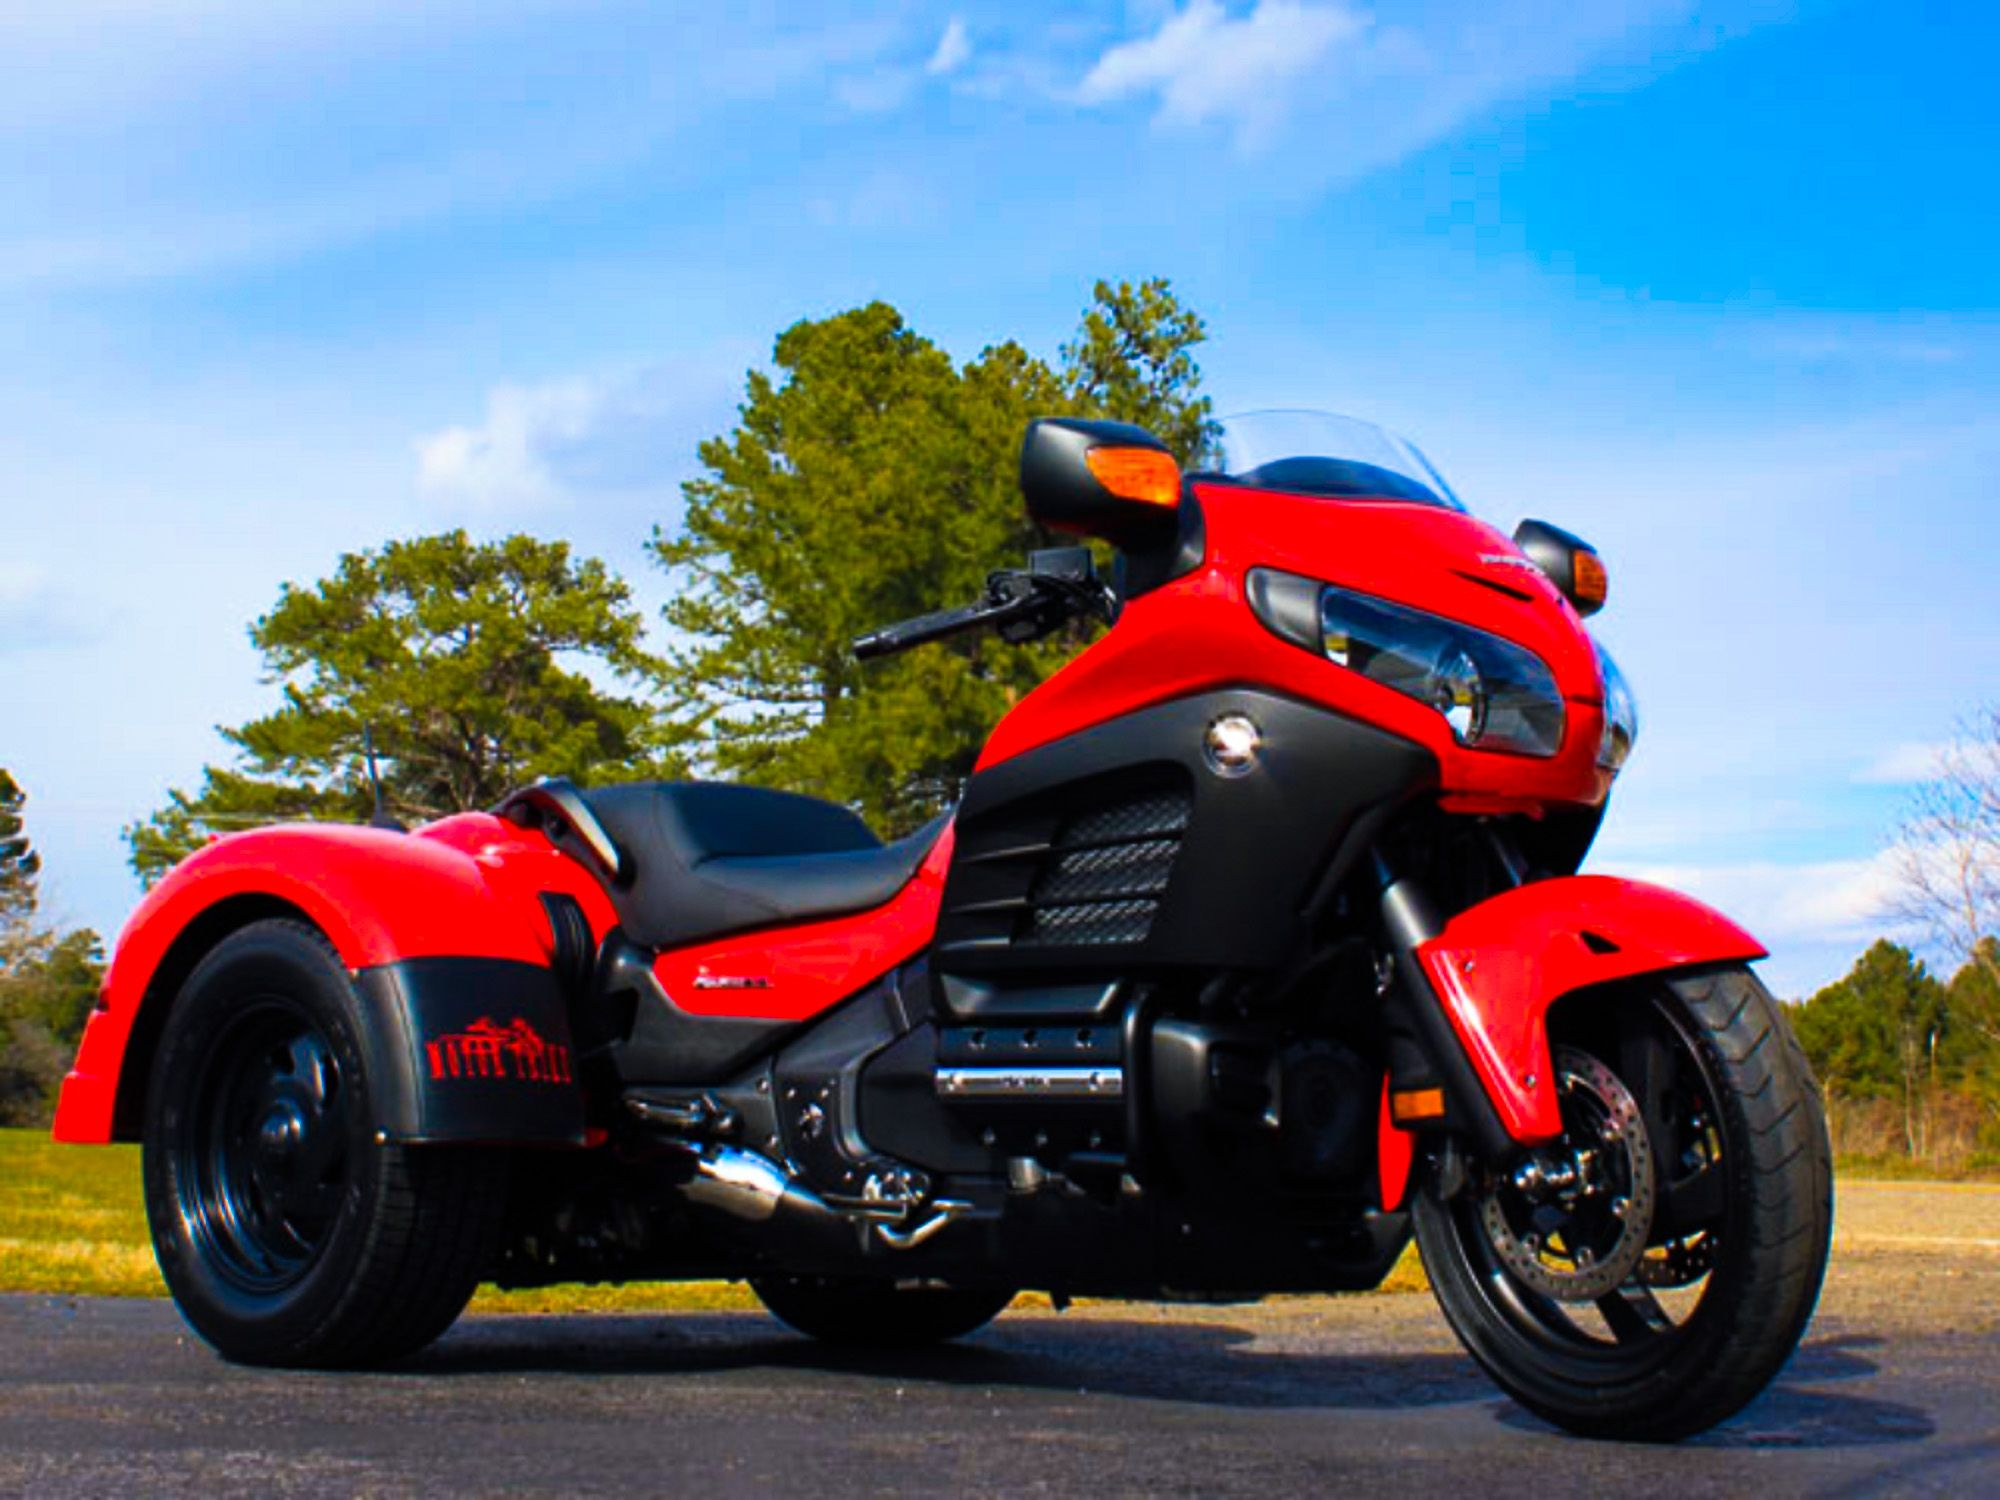 2013 honda goldwing f6b raptor trike kit price 8 395 http